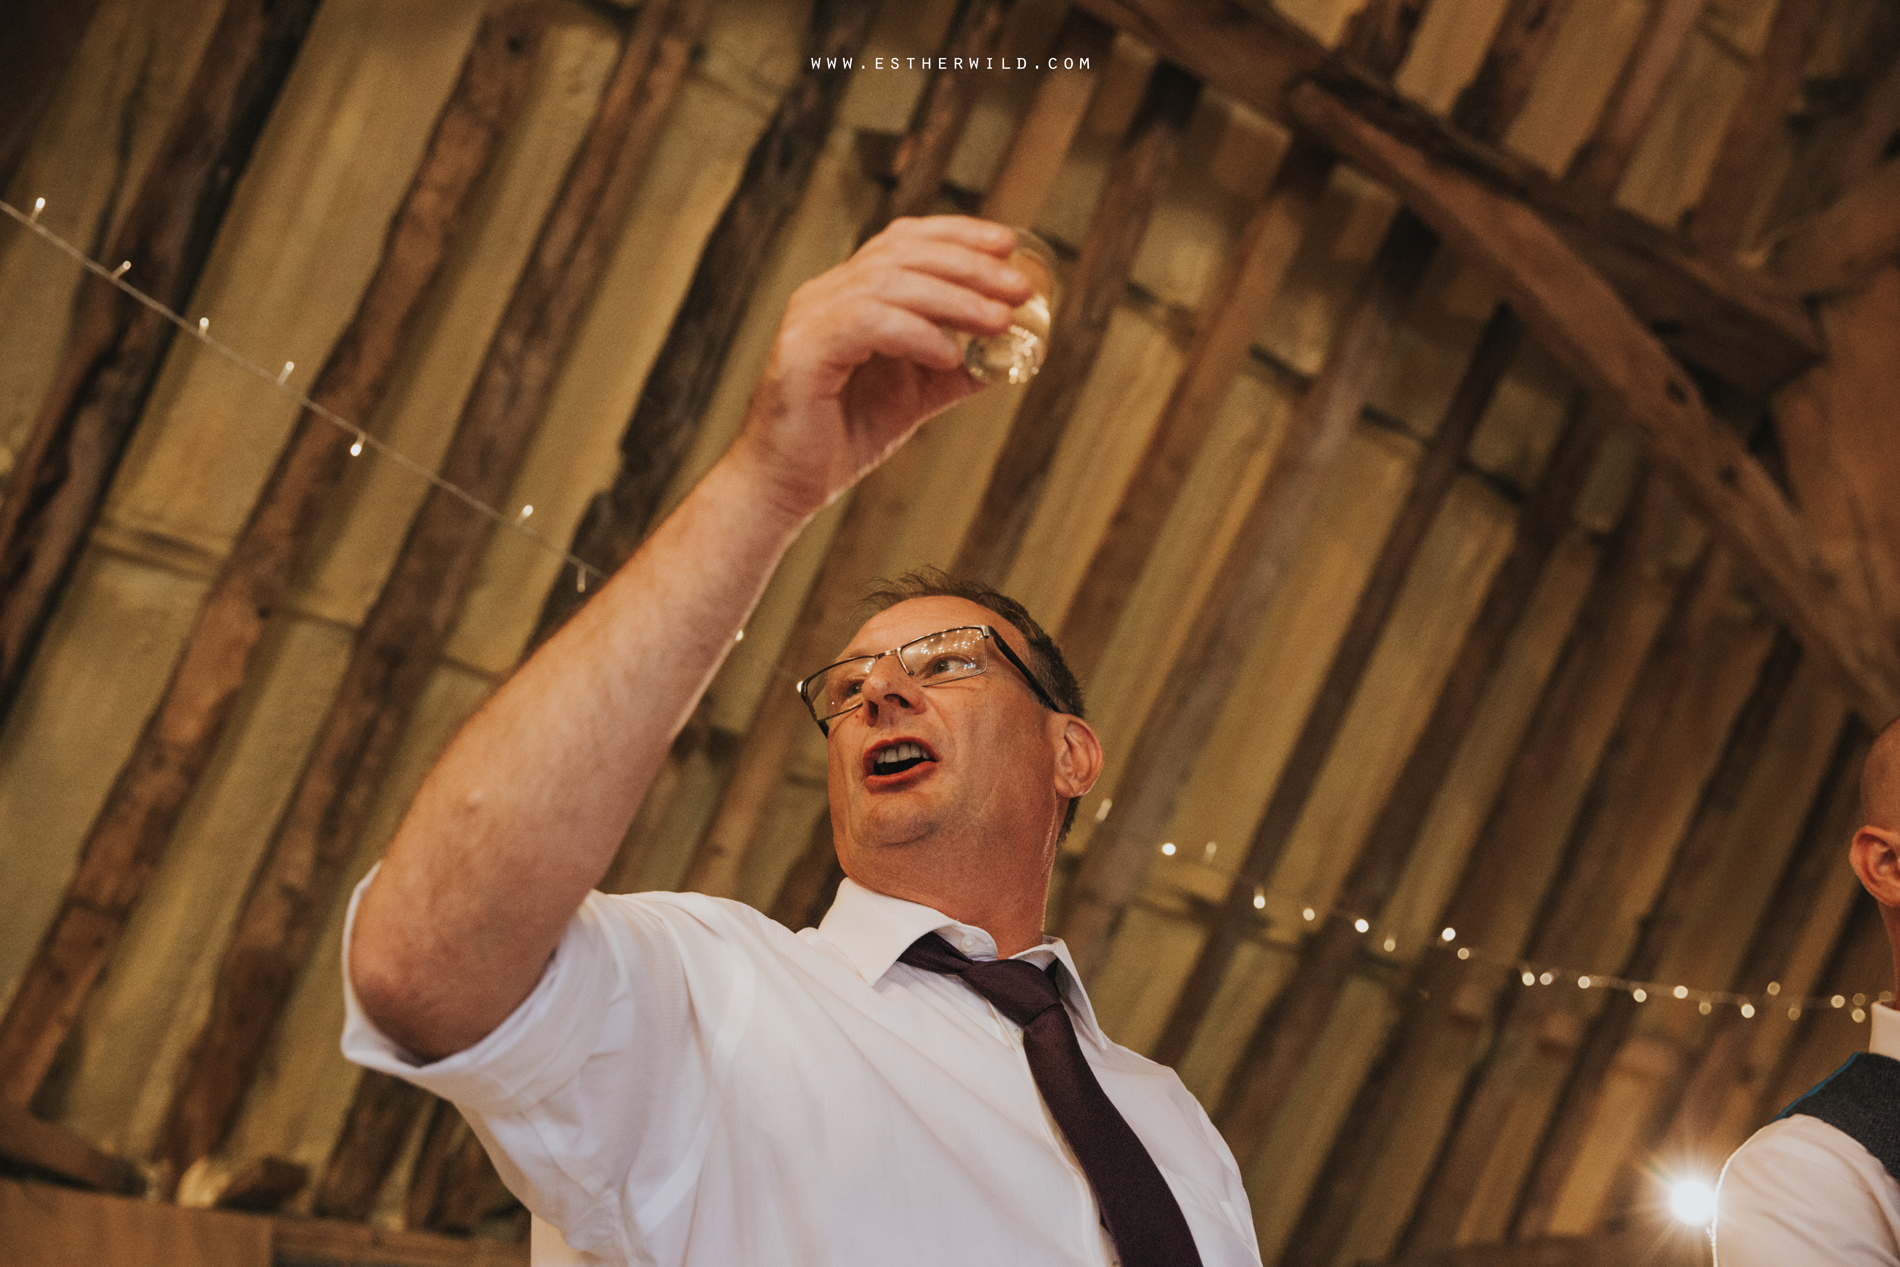 The_Red_Barn_Wedding_Kings_Lynn_Norfolk_IMG_2242.jpg